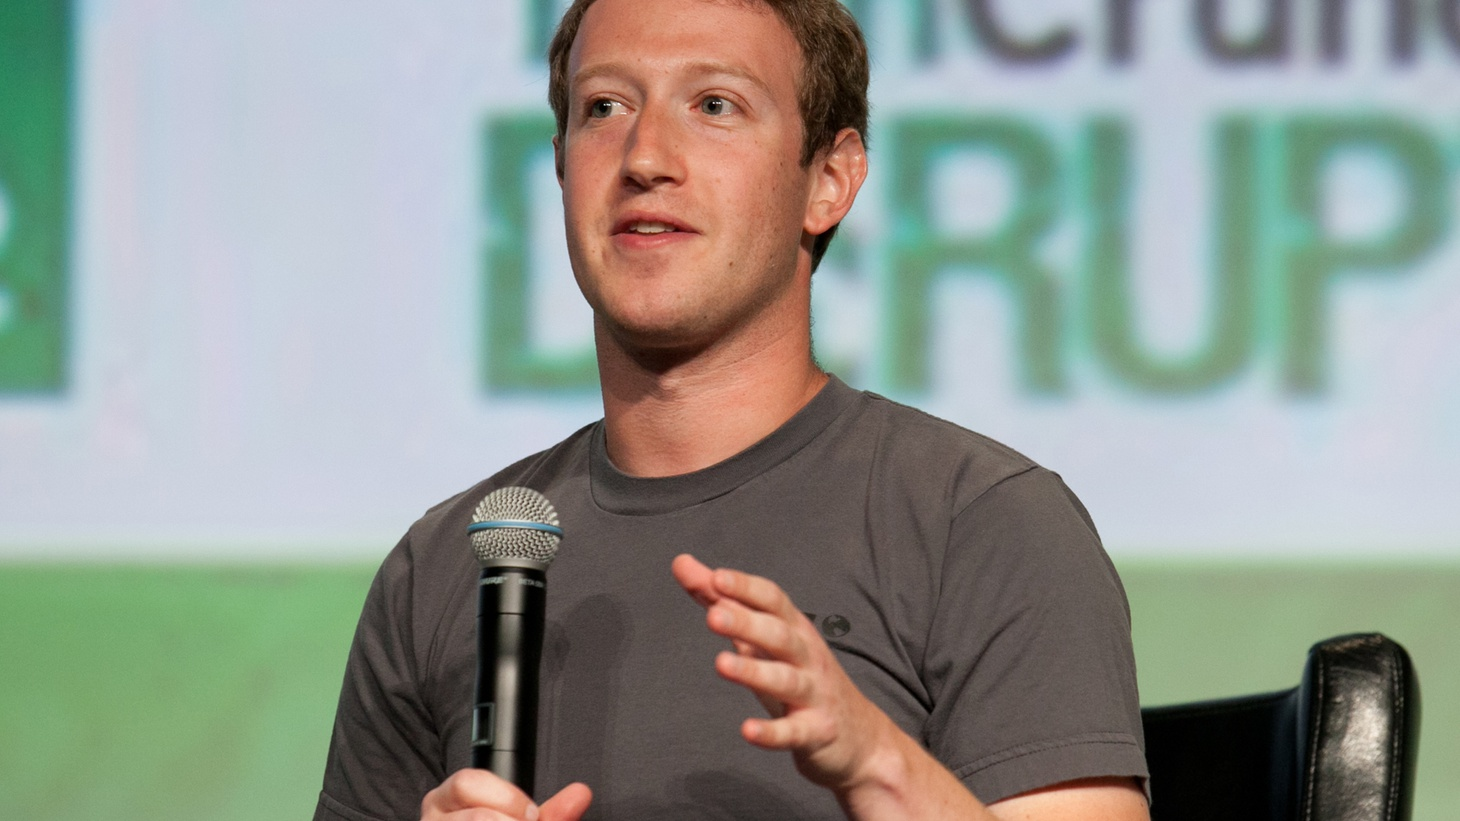 Mark Zuckerberg has already changed the world we all live in. Now he wants to change the world that future generations will live in, too.